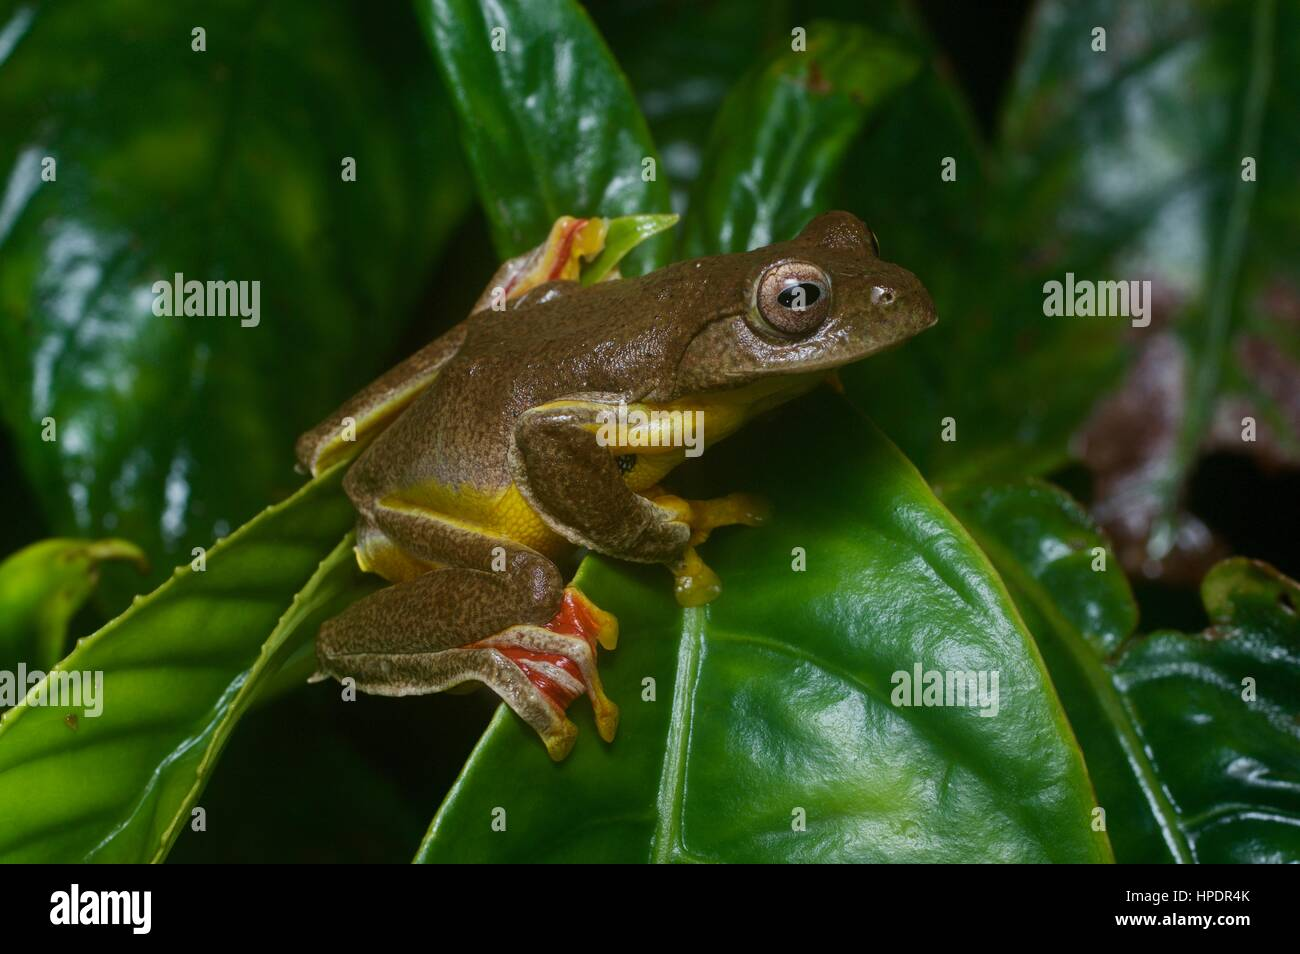 A Twin-spotted Flying Frog (Rhacophorus bipunctatus) in the rainforest at night in Genting Highlands, Pahang, Malaysia Stock Photo